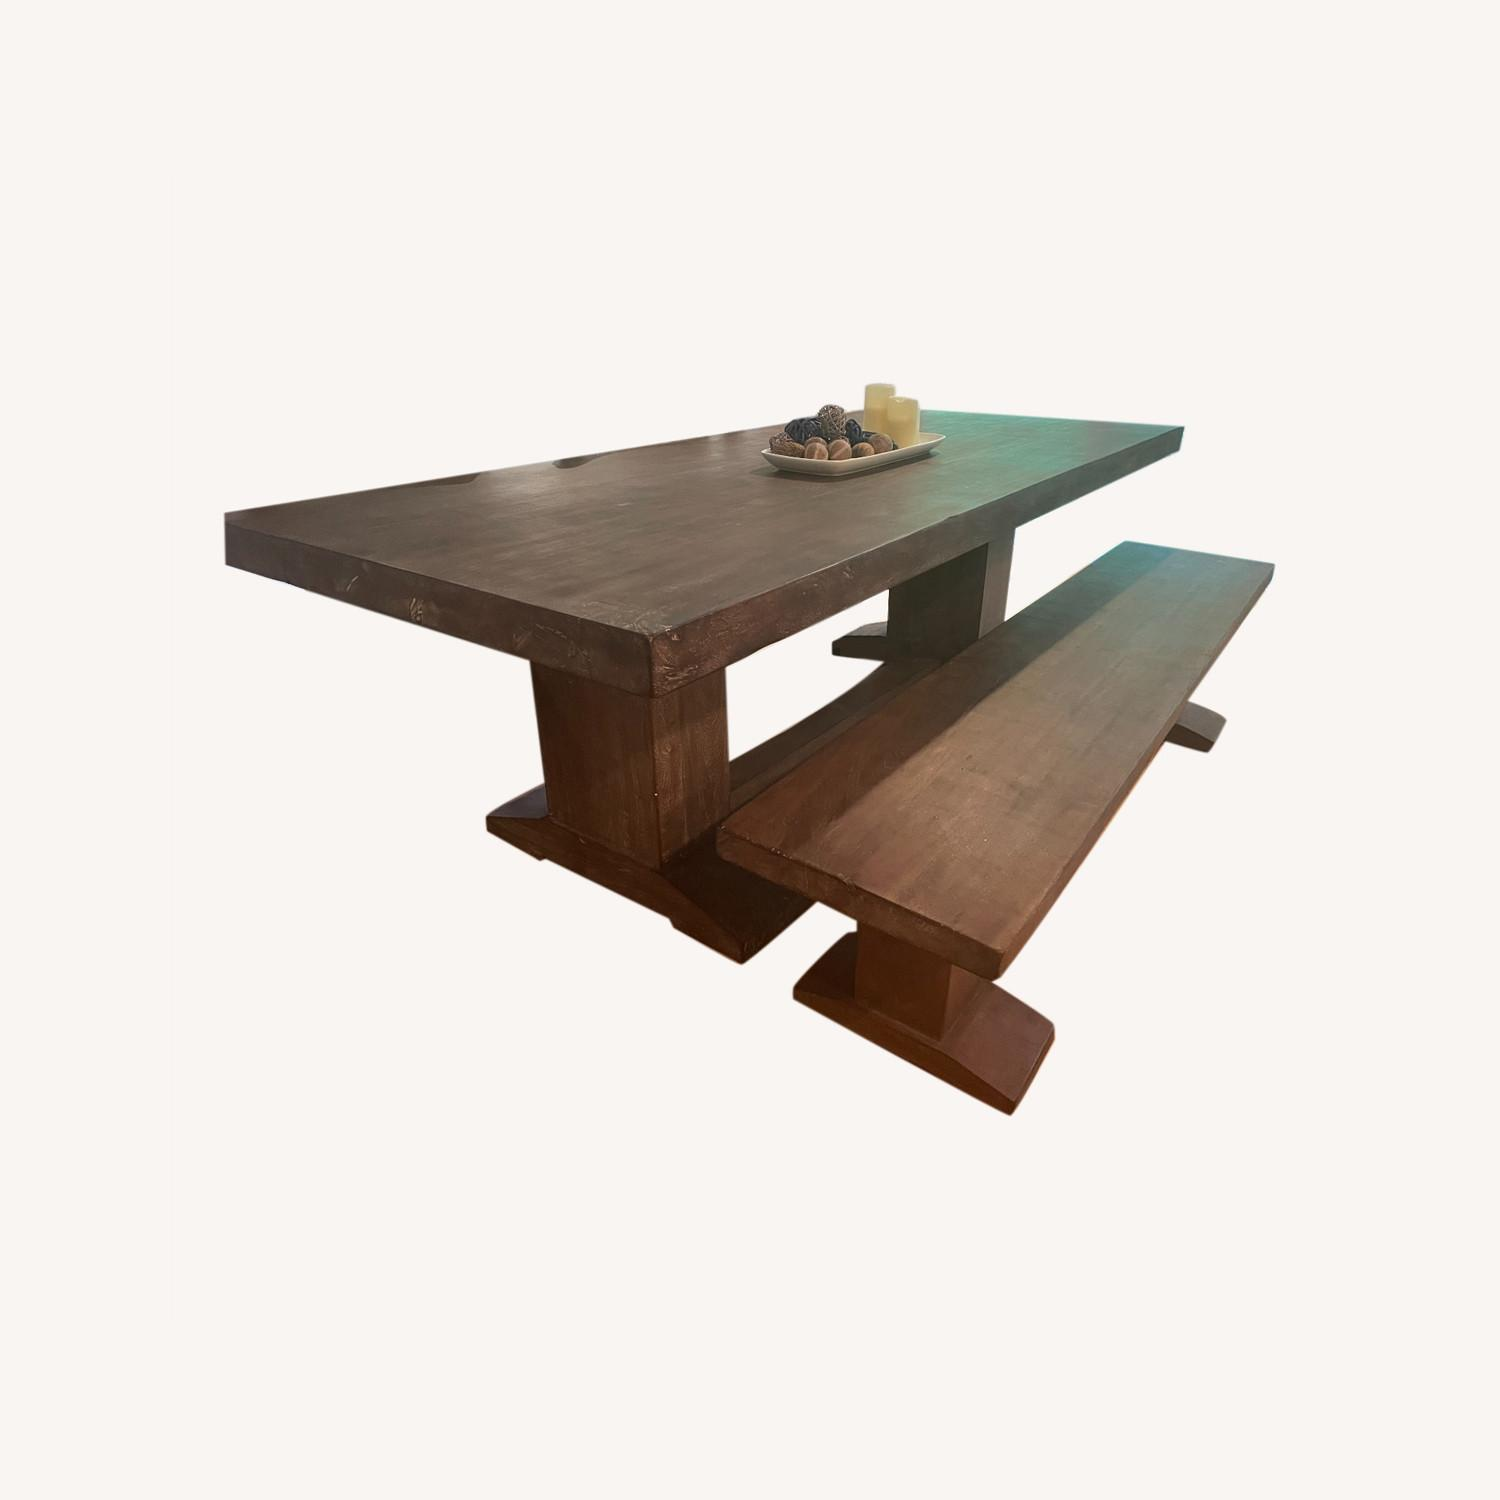 94-Inch Solid Acacia Wood Dining Table & Bench - image-0